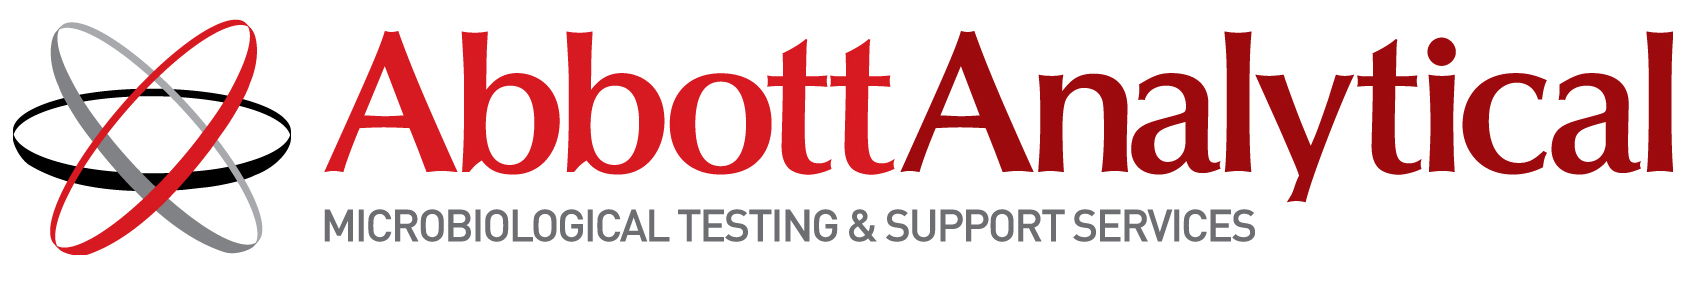 Abbott Analytical